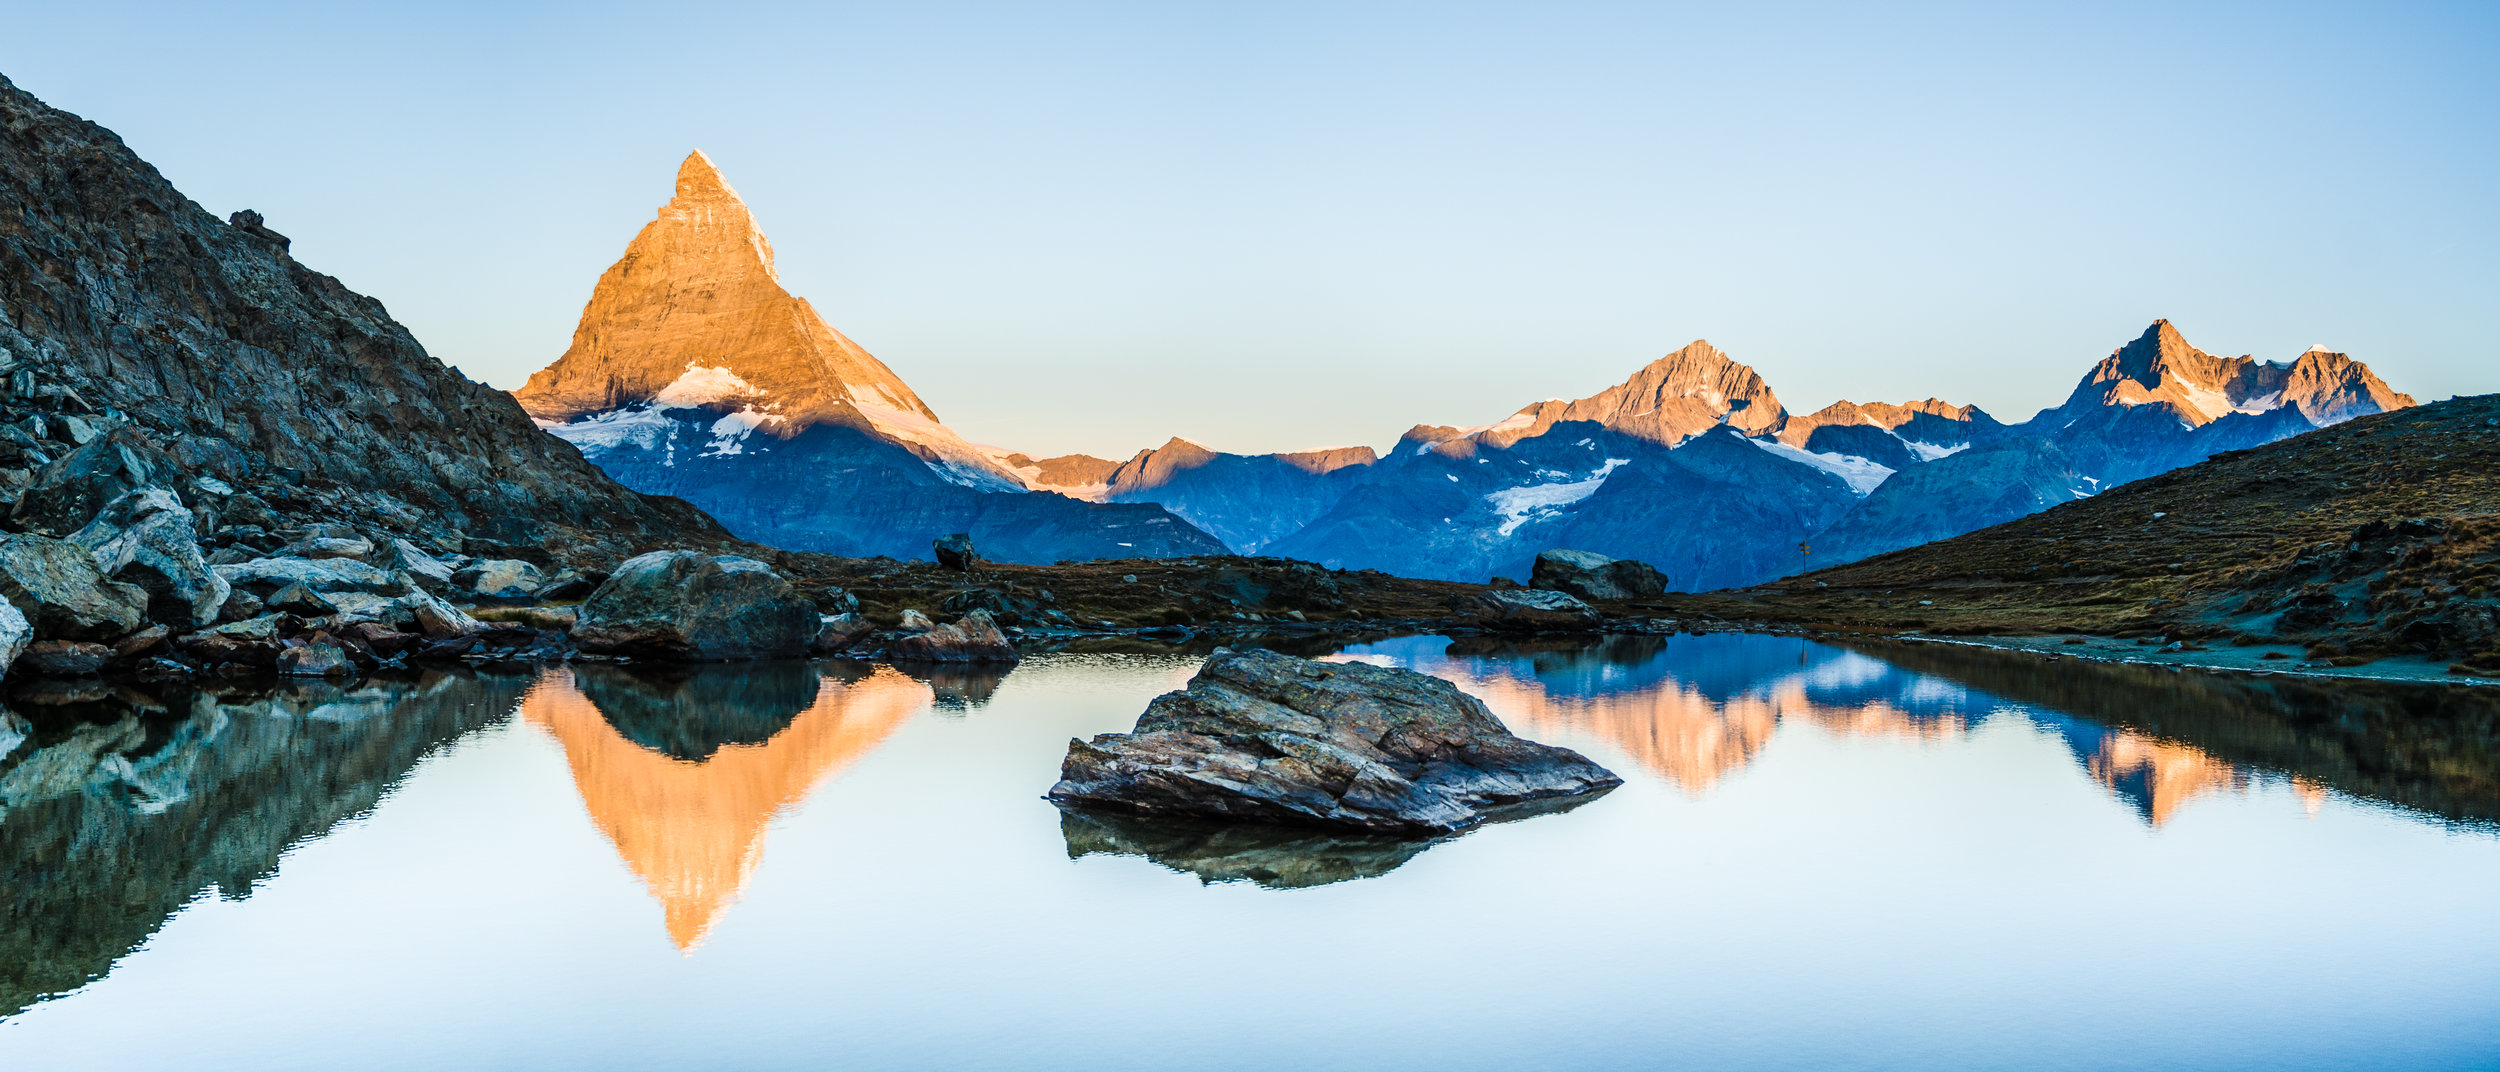 The Matterhorn reflected in the cool waters at Riffelsee Lake.